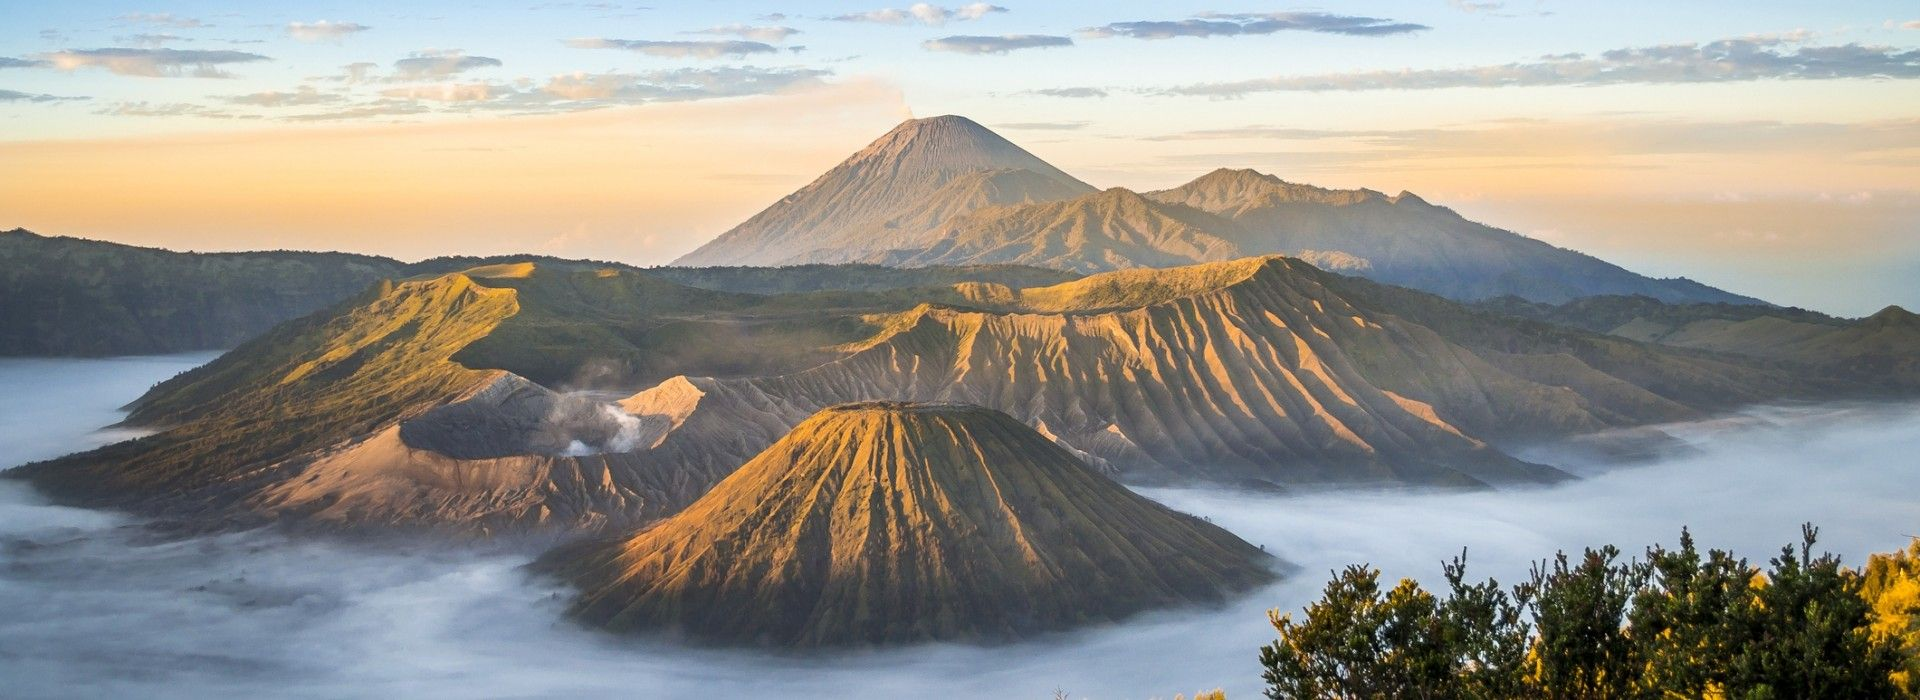 Mount Bromo stands at 2329 meters above sea-level.